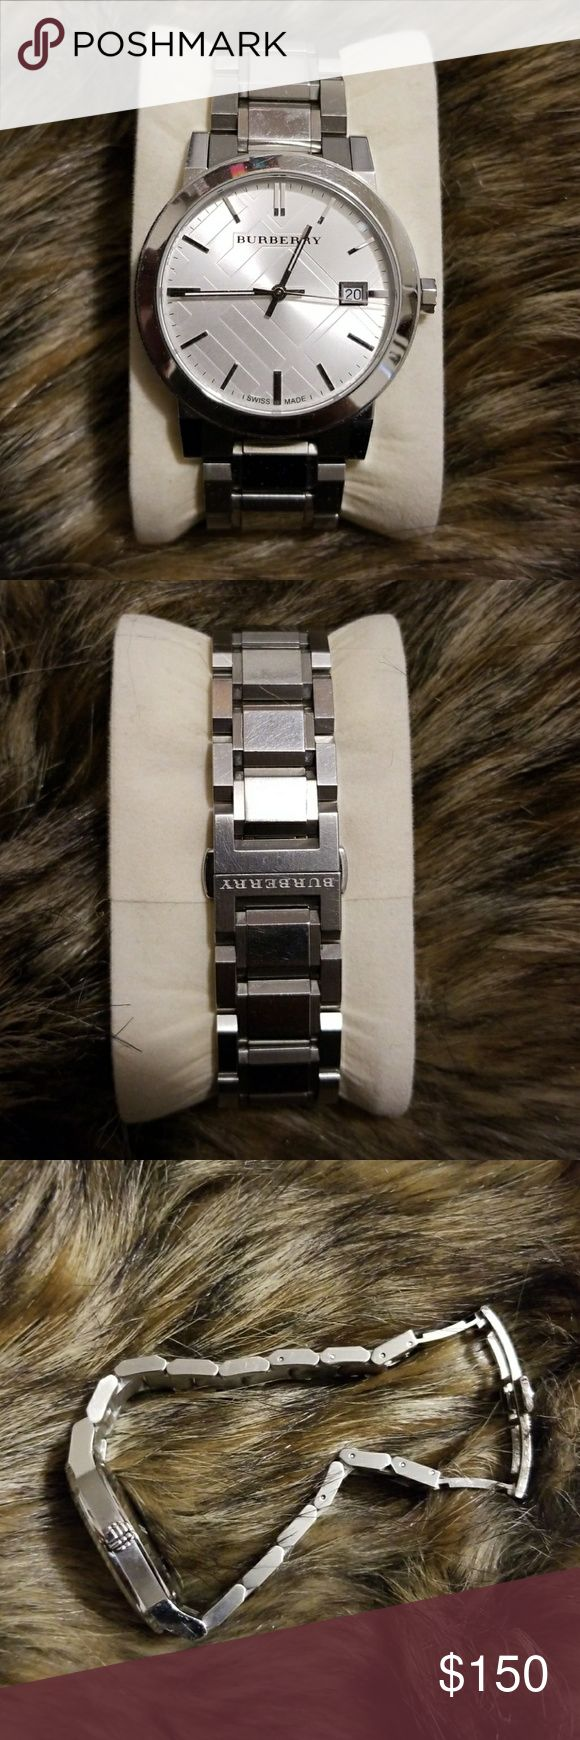 Burberry Watch 100% Authentic  Pre owned WATCH Has some scratches  Battery works No box Burberry Accessories Watches